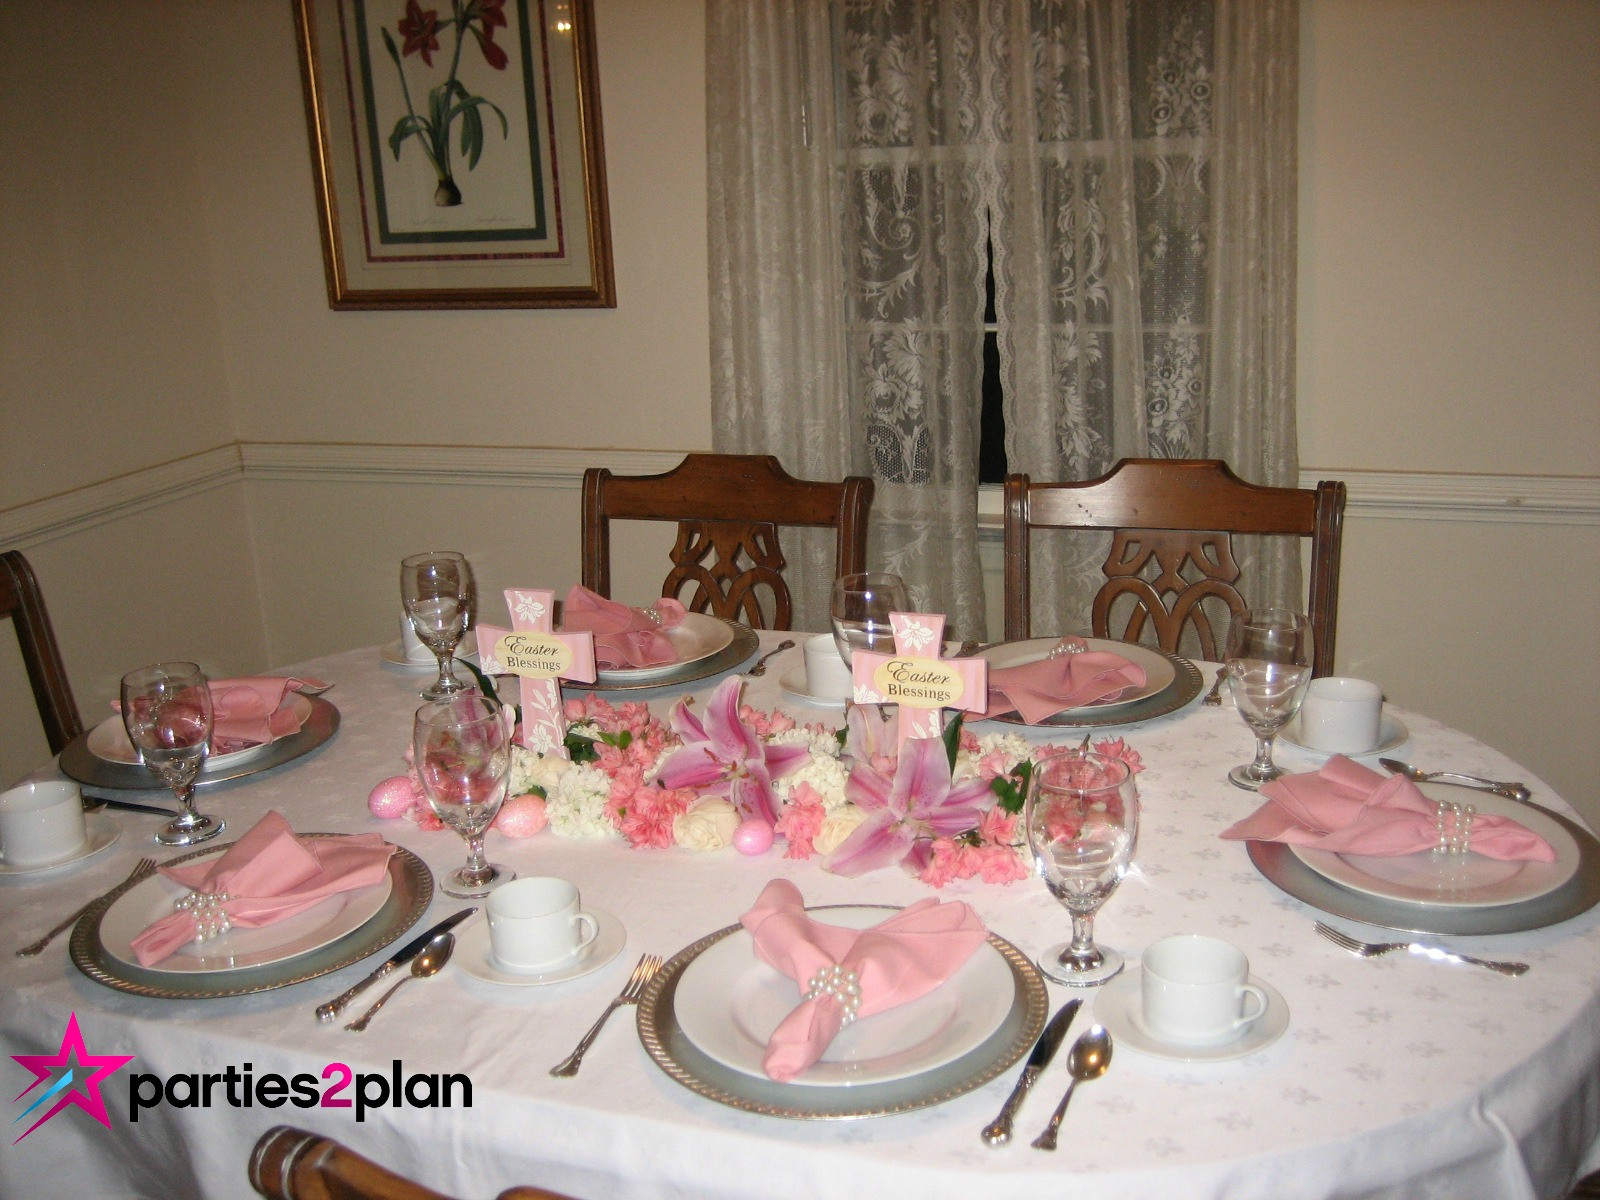 Dinner Table Deco  Tablescape Easter Dinner Table Decorations